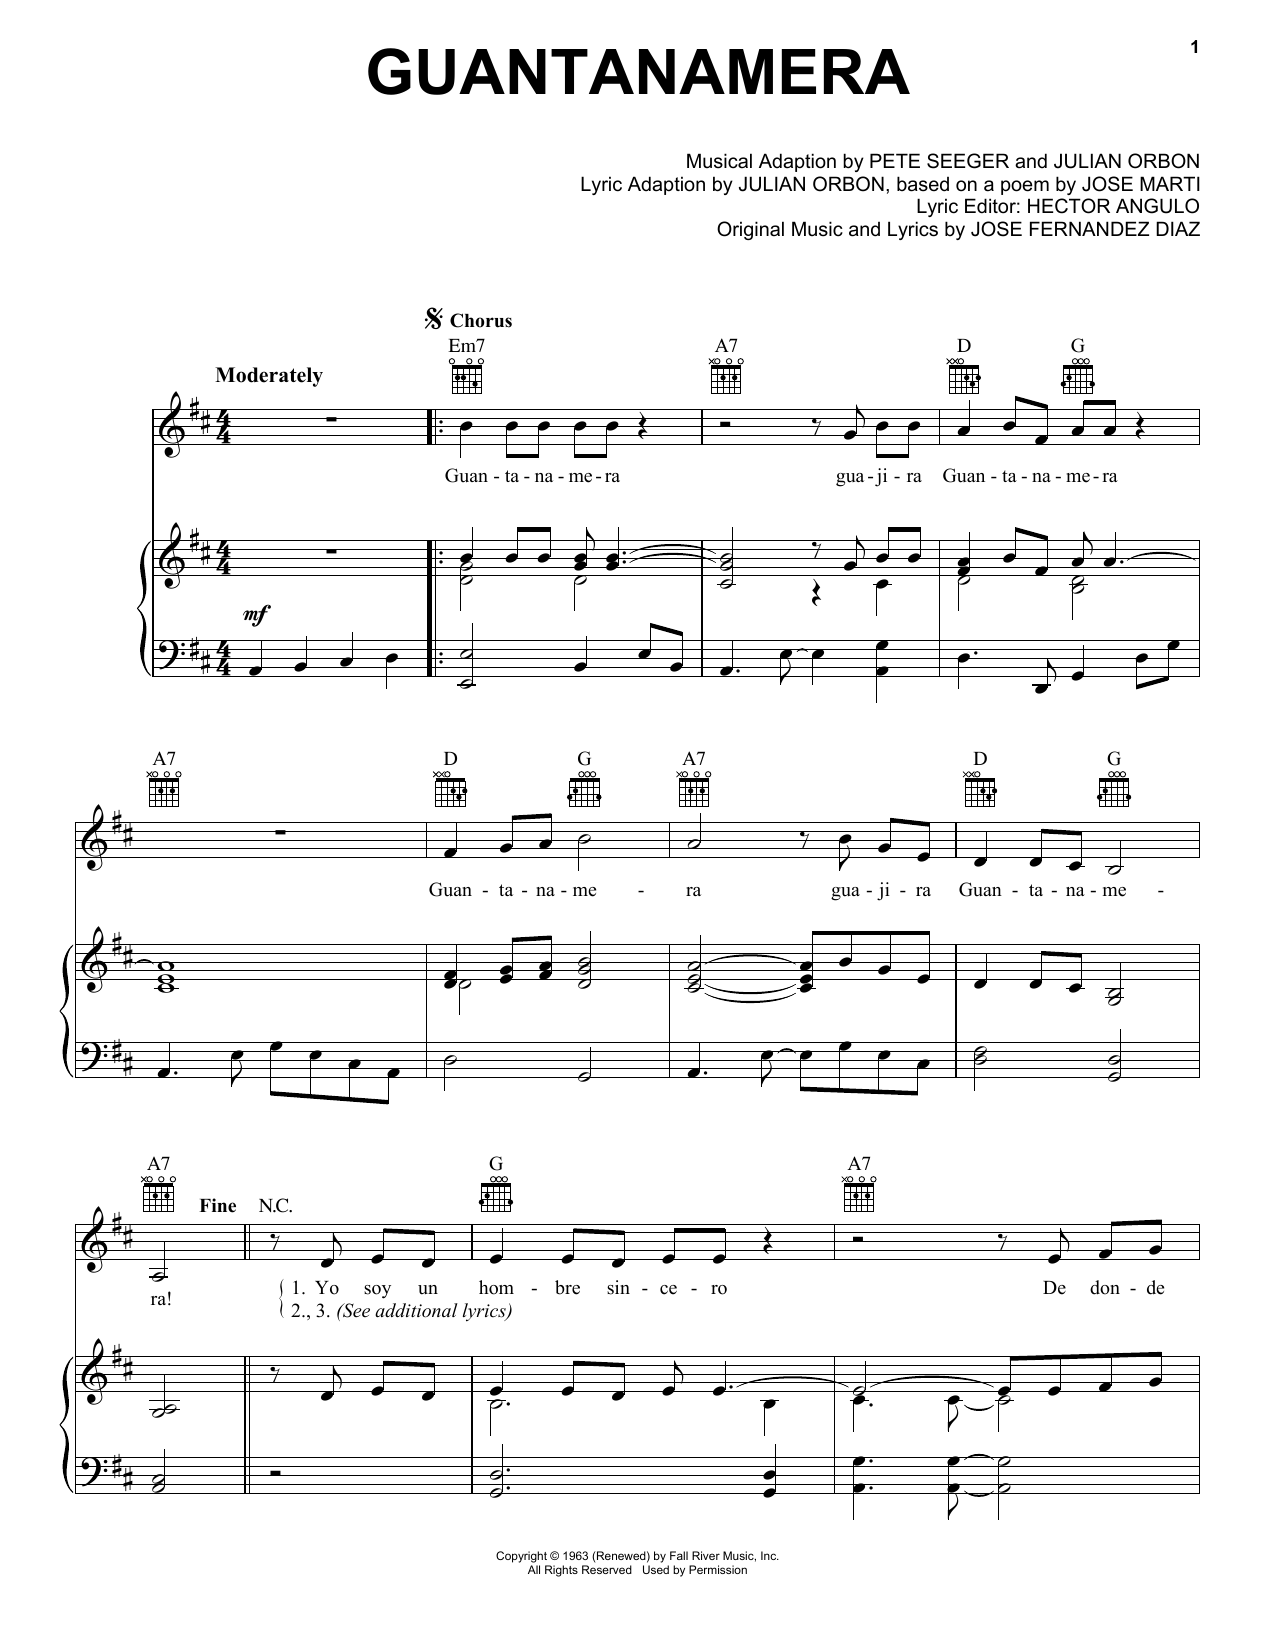 Pete Seeger Guantanamera sheet music notes and chords